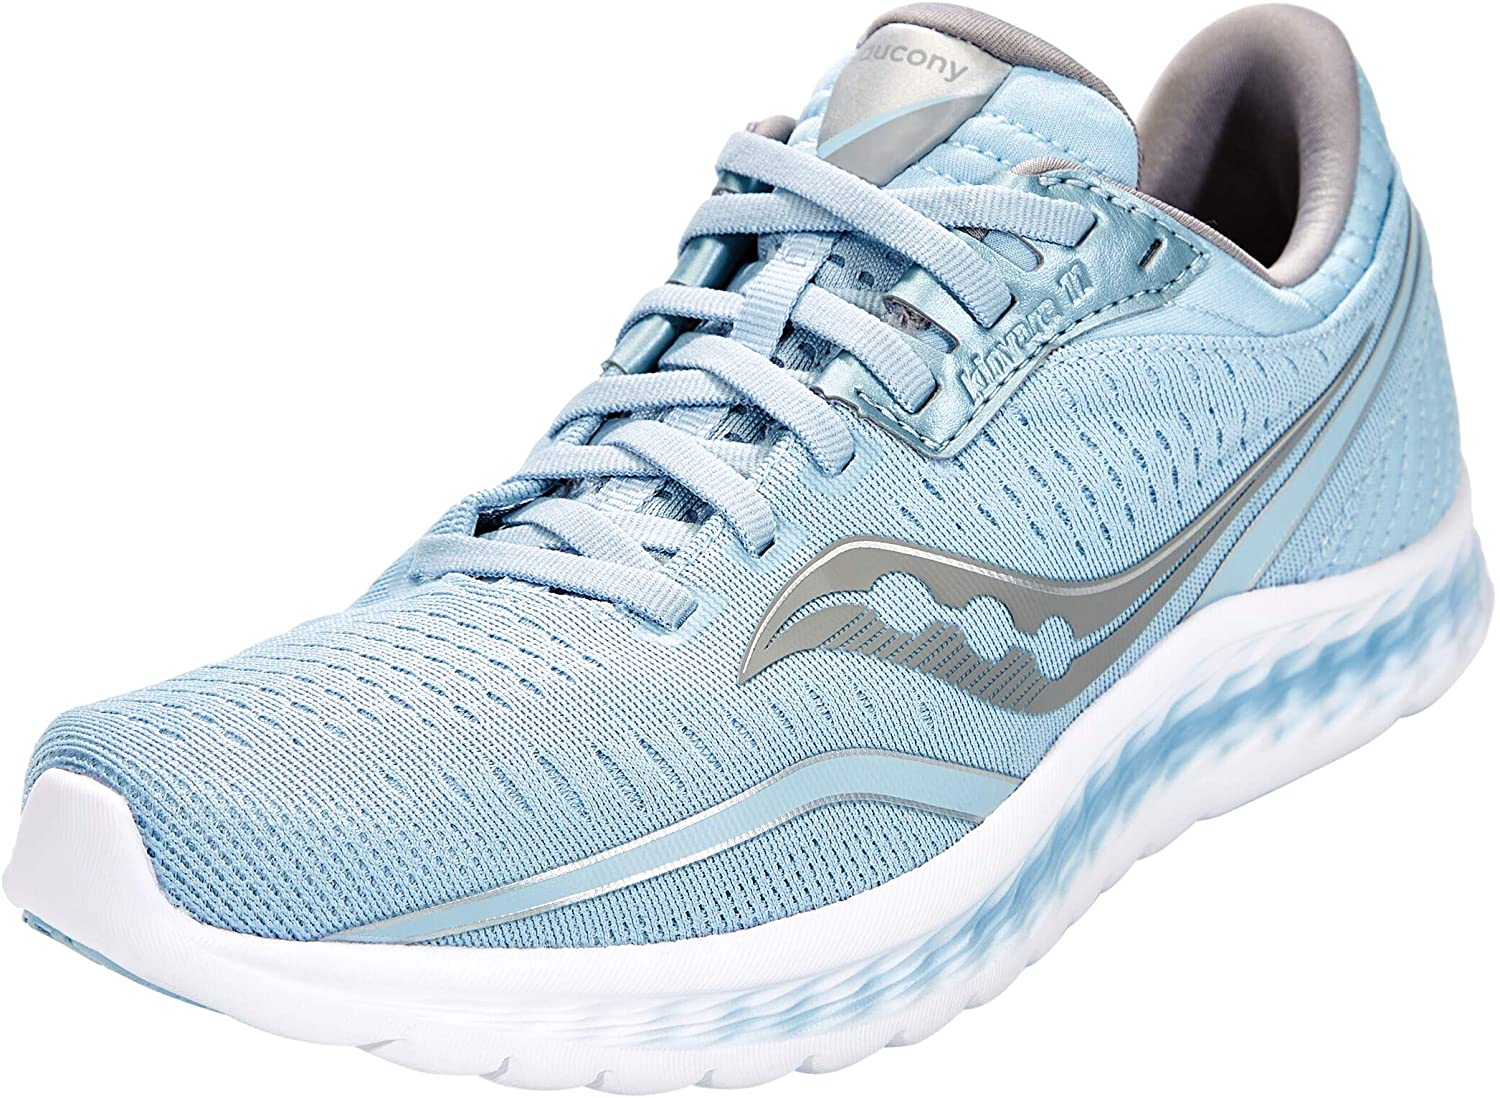 Saucony Women's Kinvara 11 Running Shoe in Sky Side Angle View